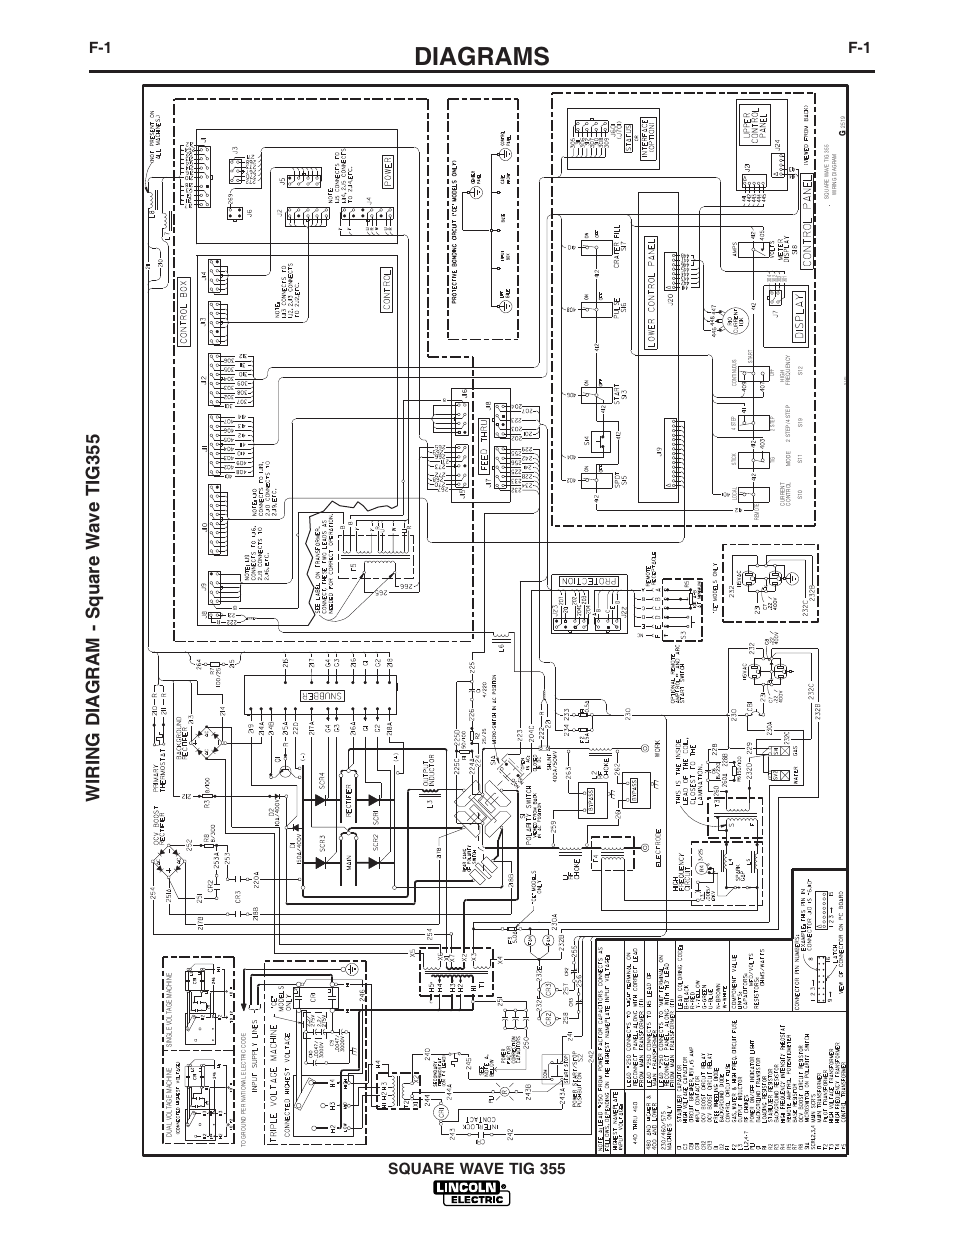 Diagrams  Wiring    diagram     square w ave tig355  2597c